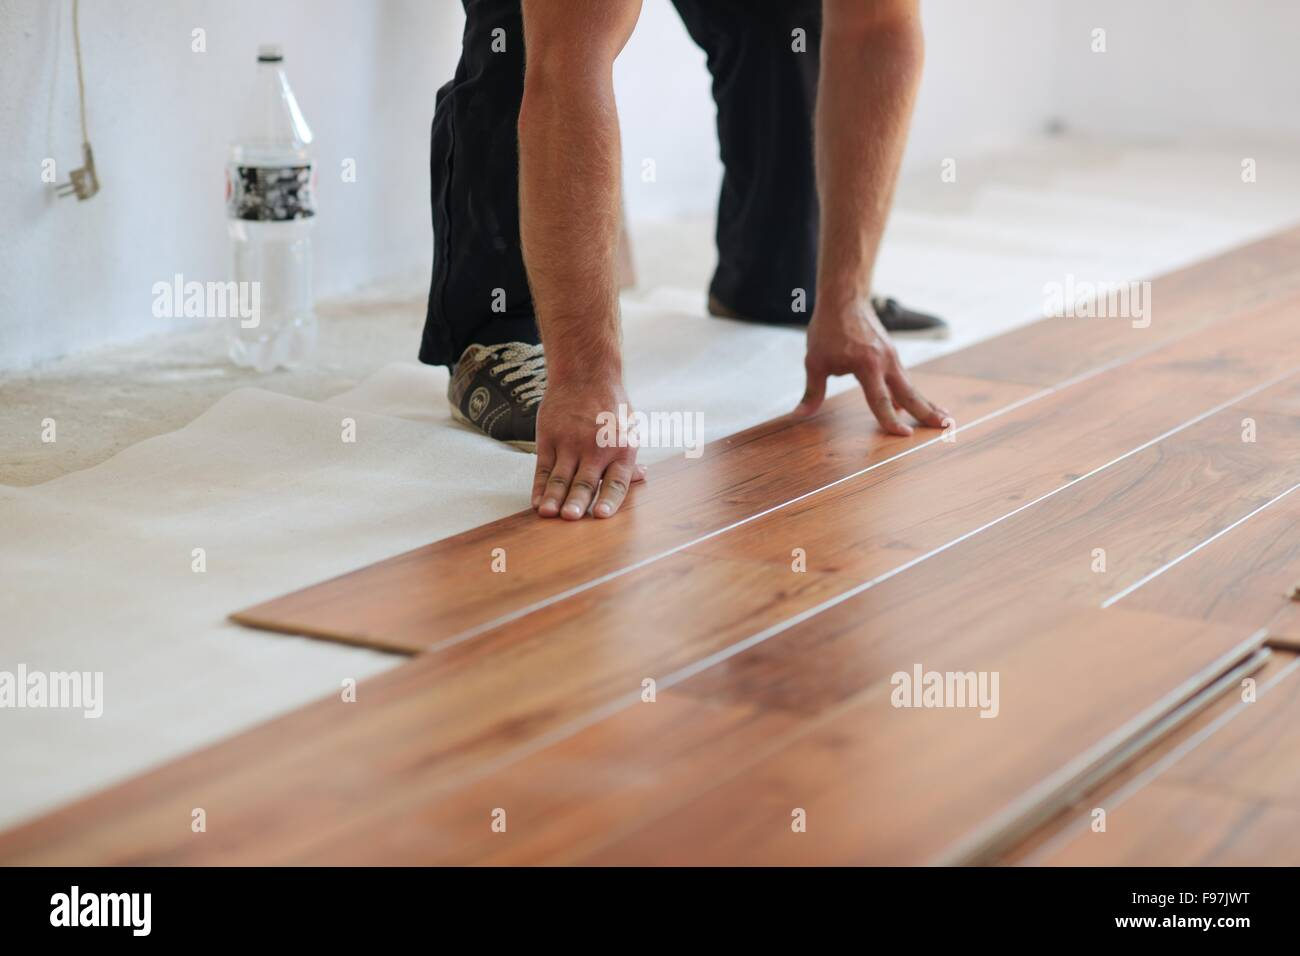 How To Install Linoleum Flooring How To Lay Vinyl Tiles On